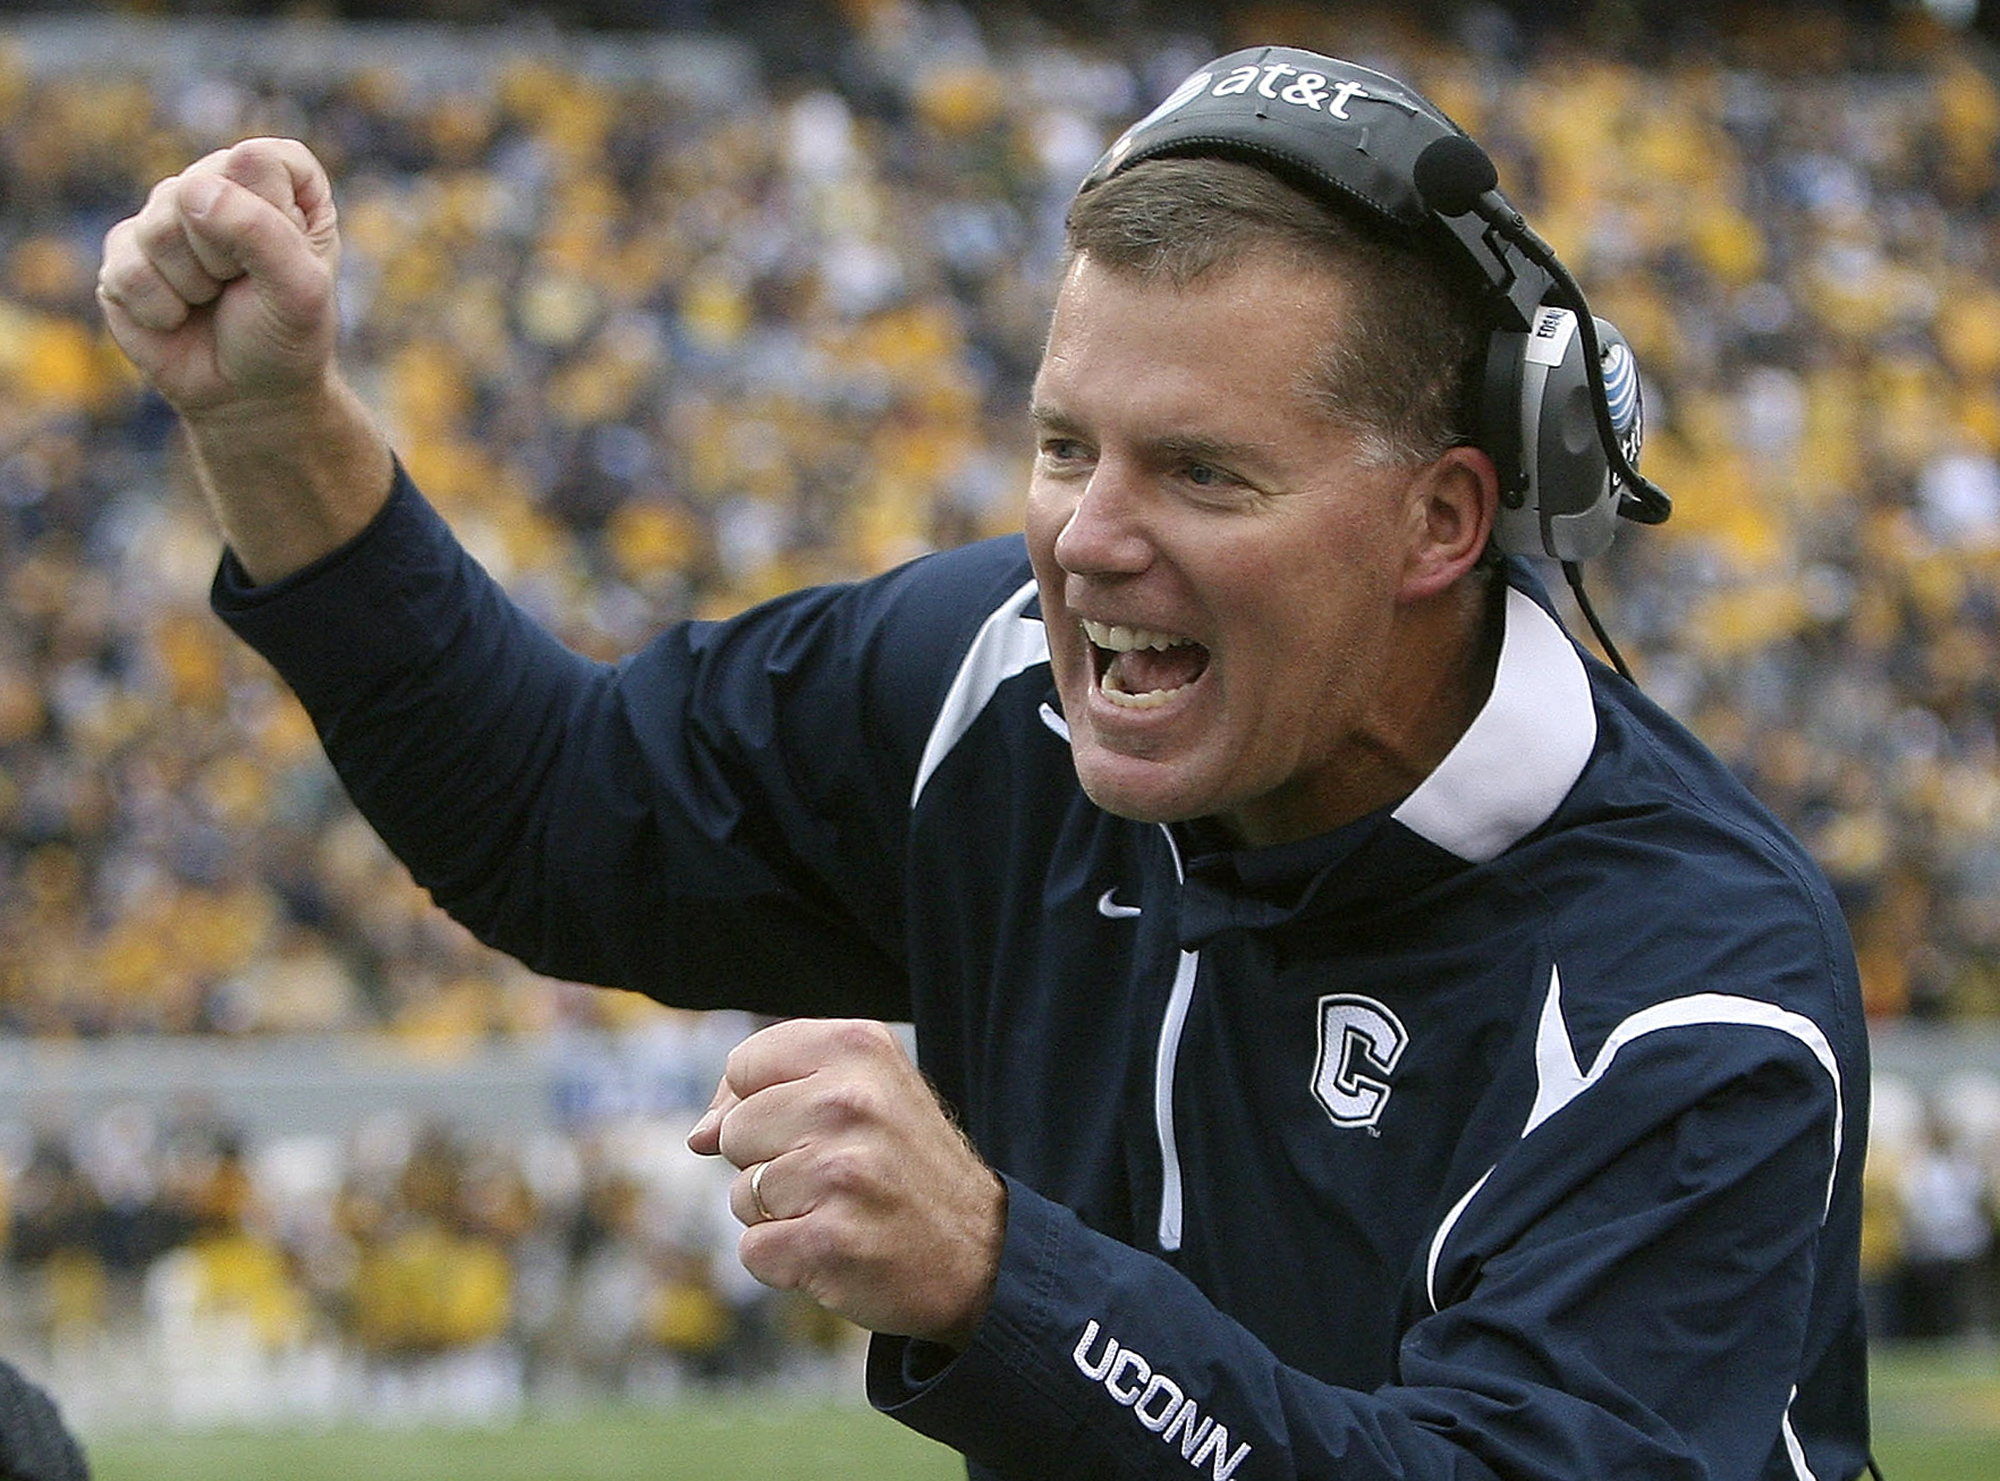 FILE - In this Oct. 24, 2009, file photo, Connecticut head coach Randy Edsall, greets a player after his team scored against West Virginia during an NCAA college football game in Morgantown, W.Va. Edsall, who coached UConn from 1999-2010, left for Marylan